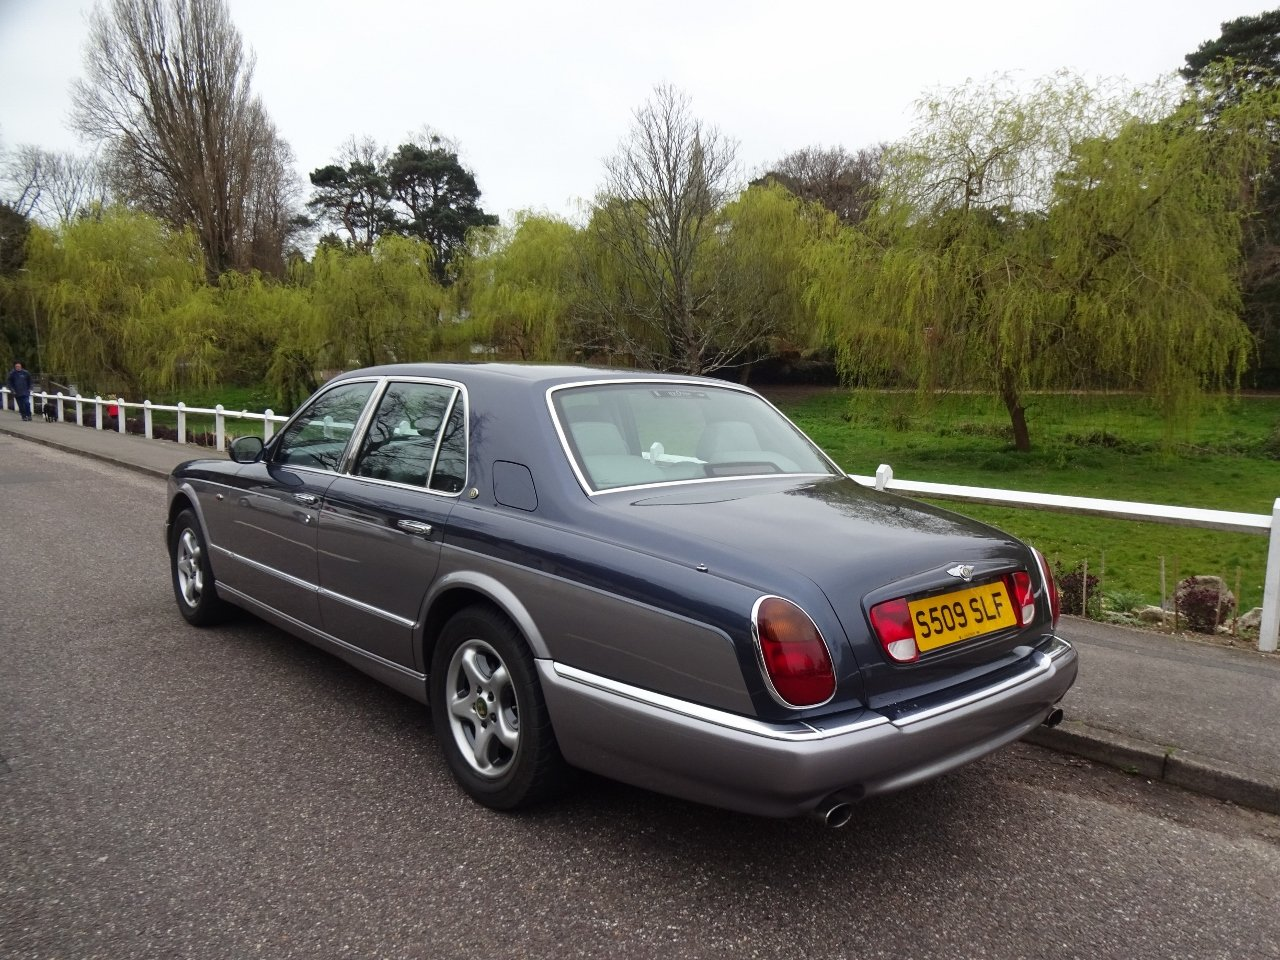 1999 Bentley Arnage 4.4 V8 Only 22,000 miles For Sale (picture 3 of 6)